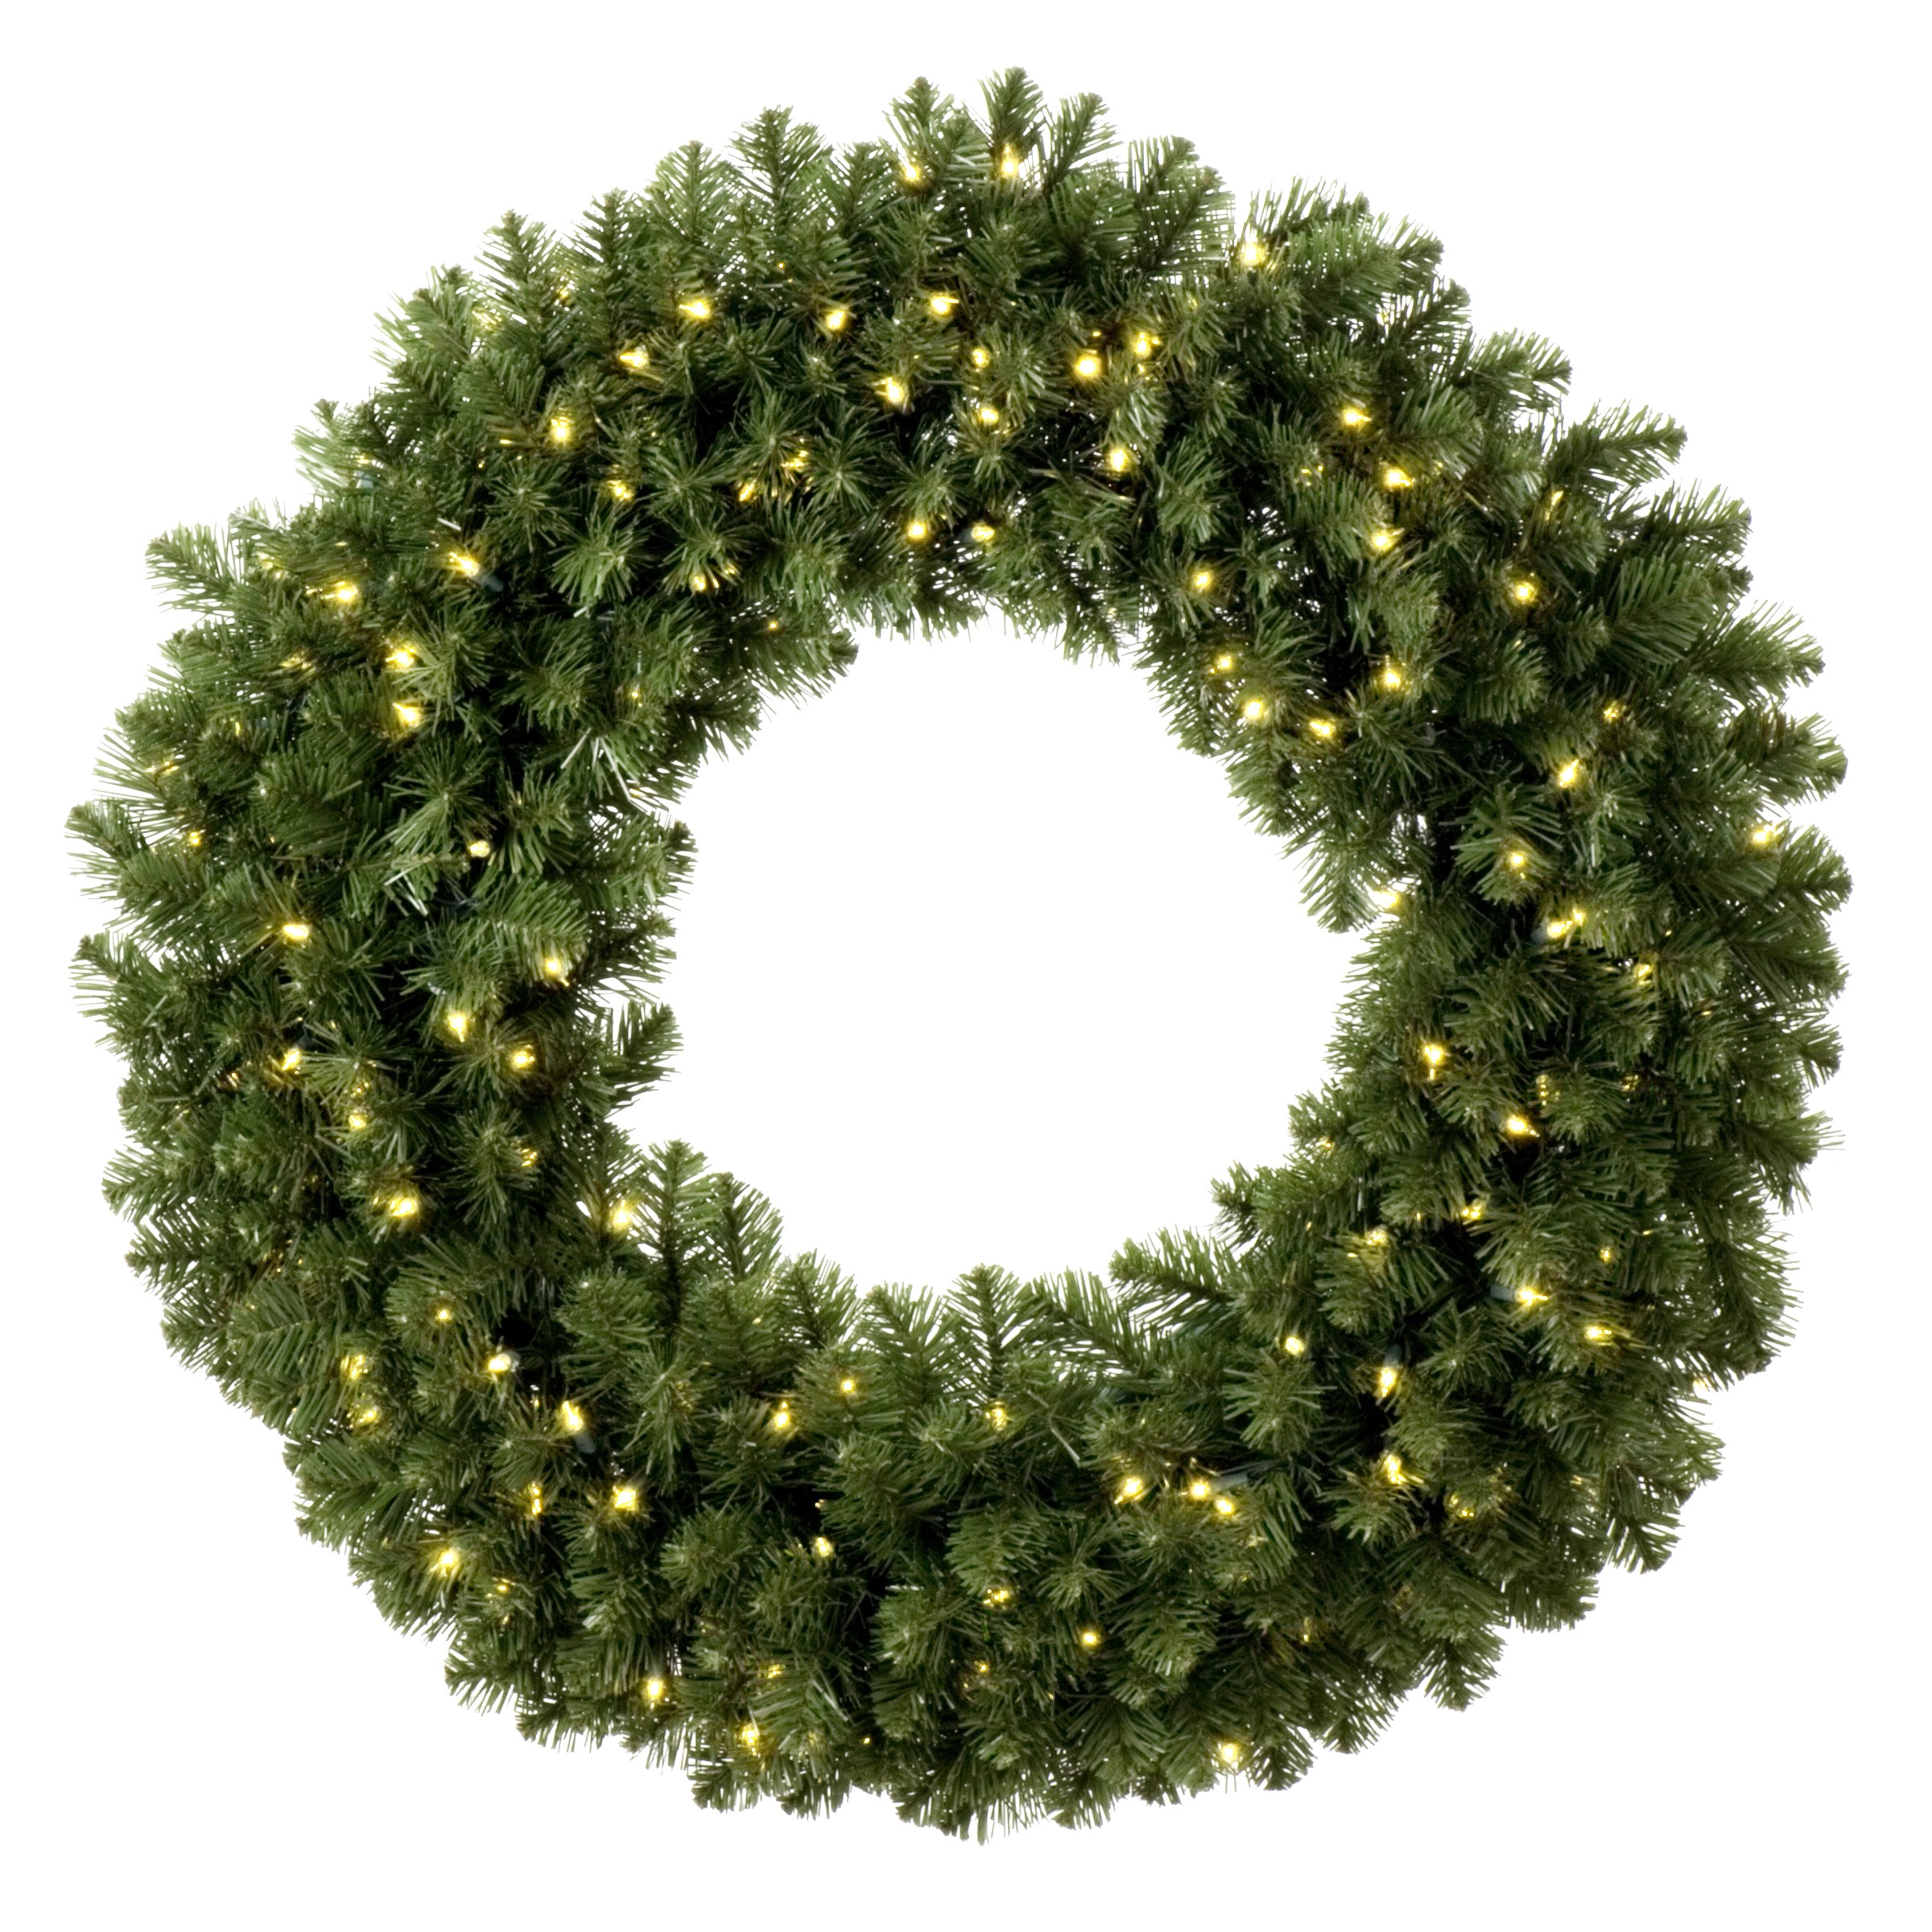 Christmas Wreath PNG Photo 16 #44252.